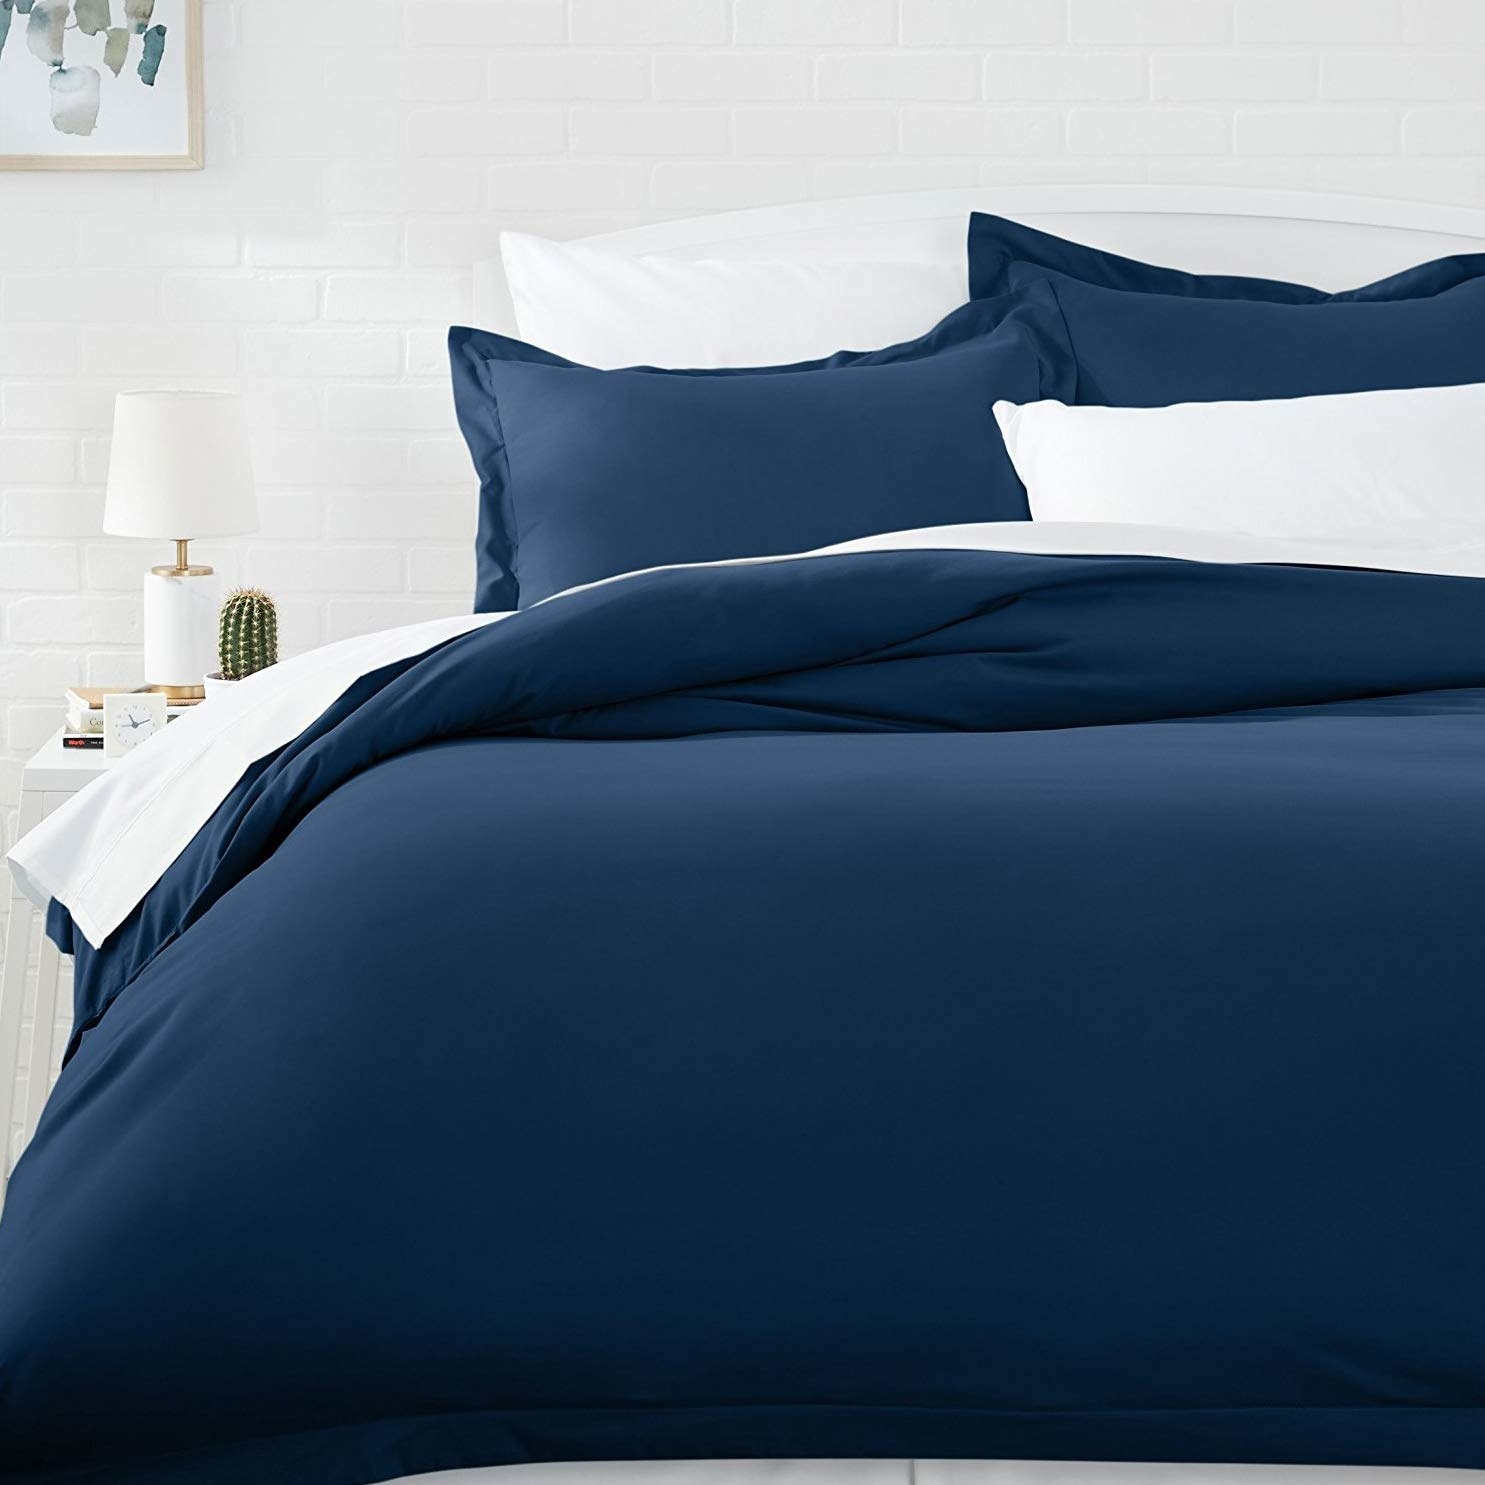 A blue microfiber duvet cover on a bed